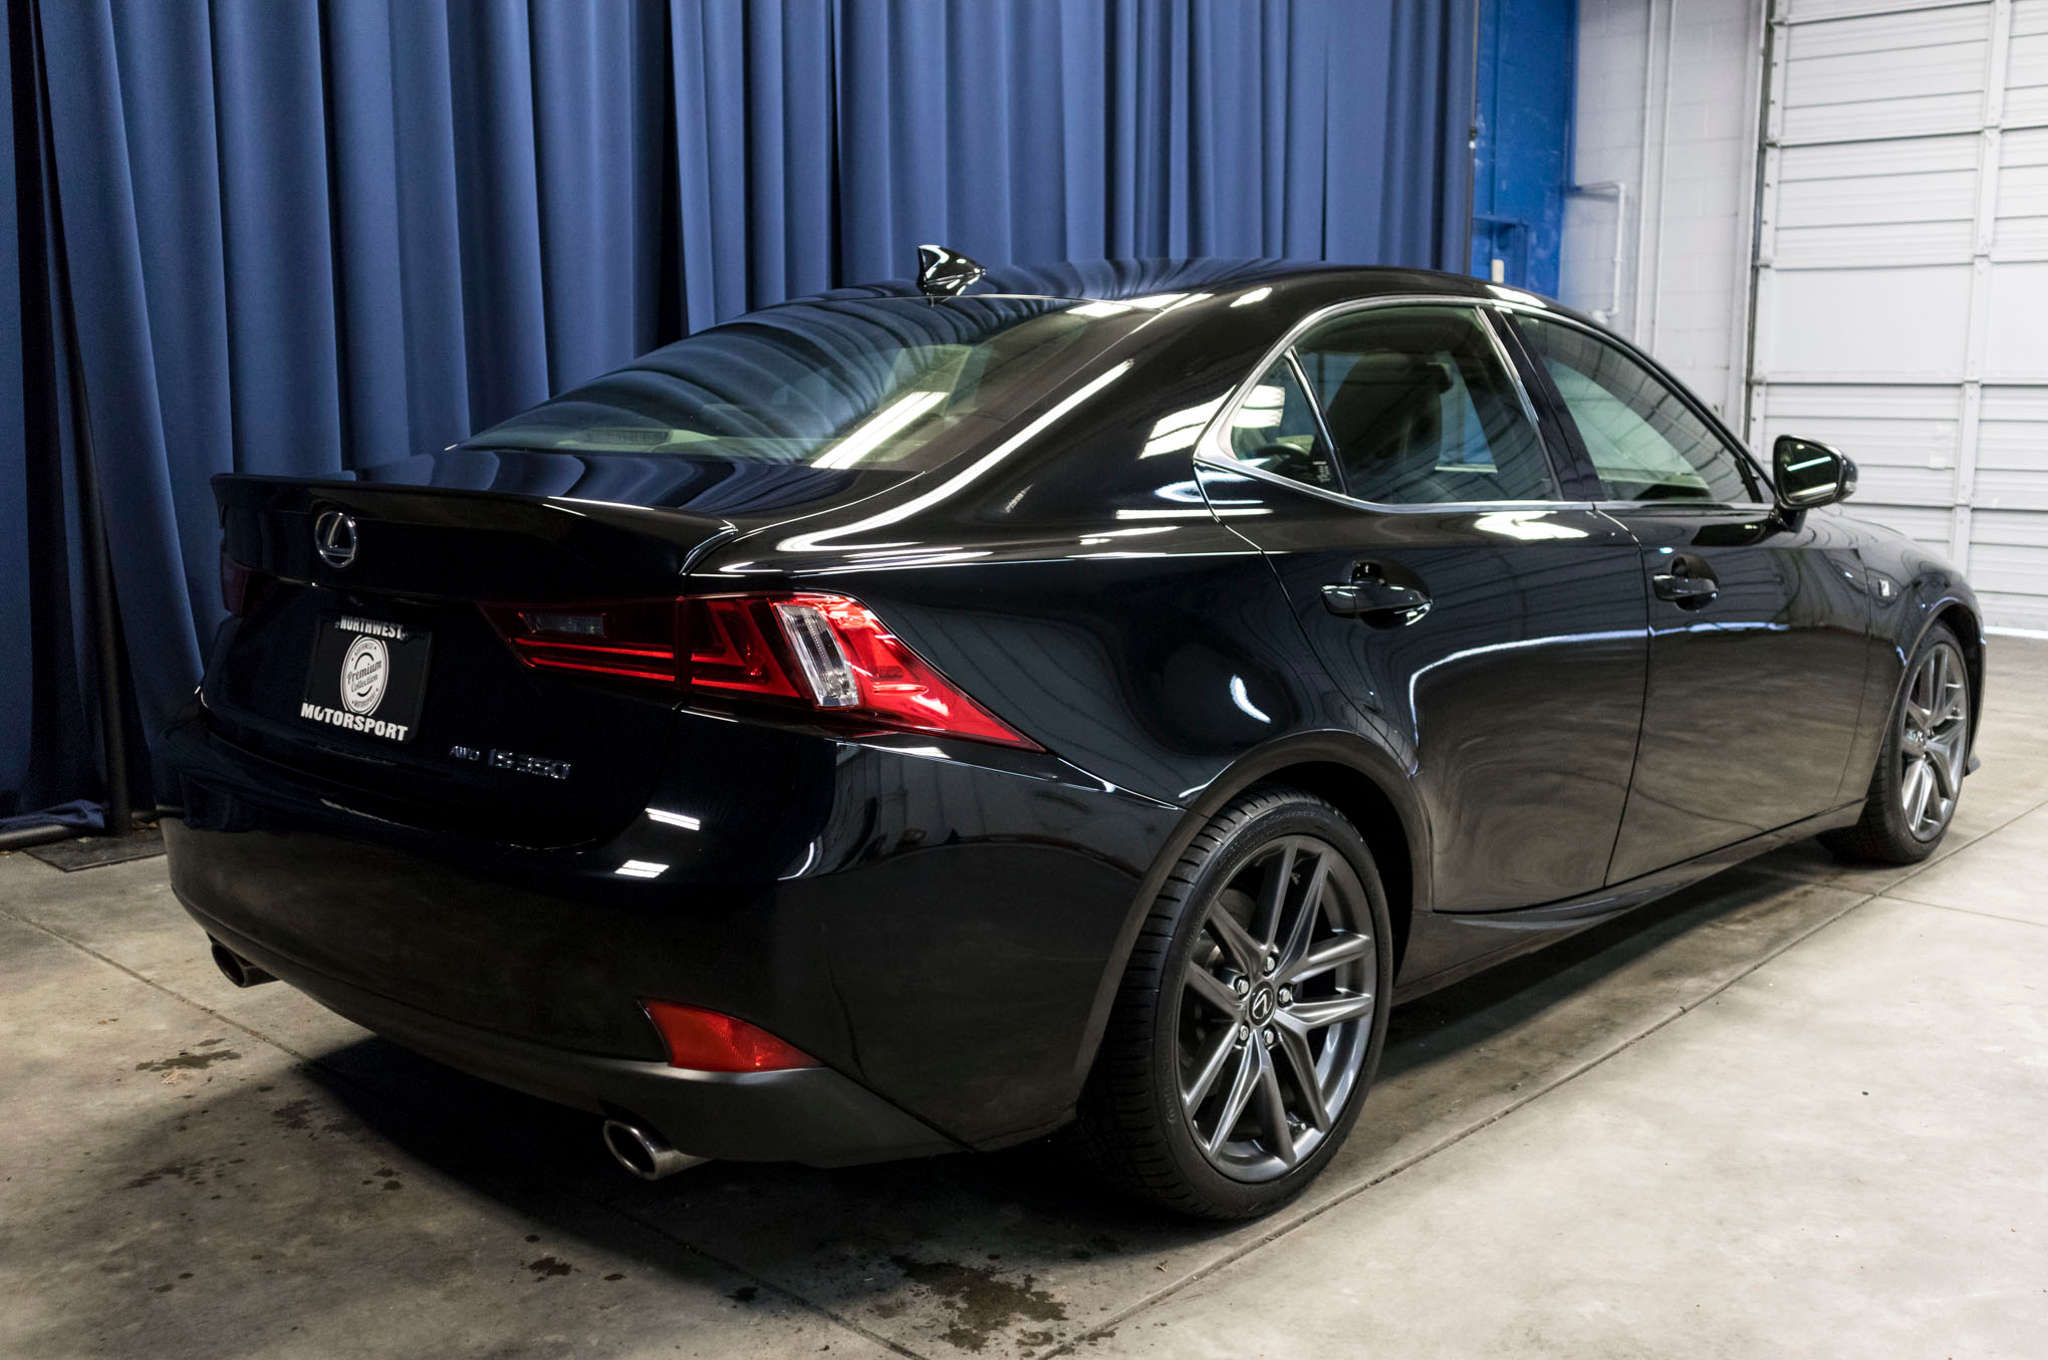 forum f sale competition sport versus for test review lexus drove thoughts and a infiniti i today inside drsqbrd